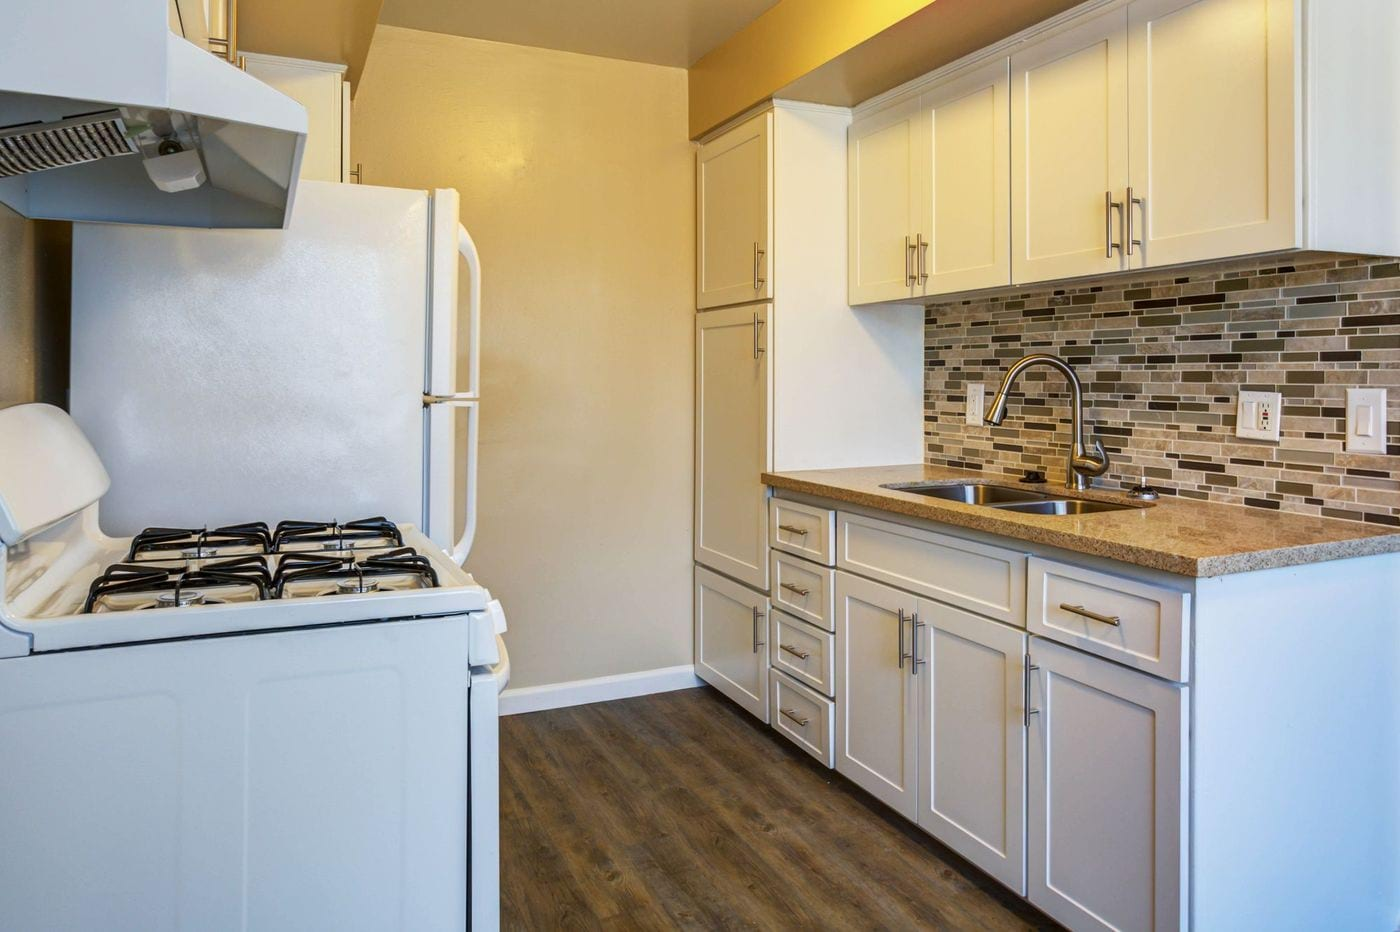 Kitchen with white cabinets and a ceramic tile backsplash.